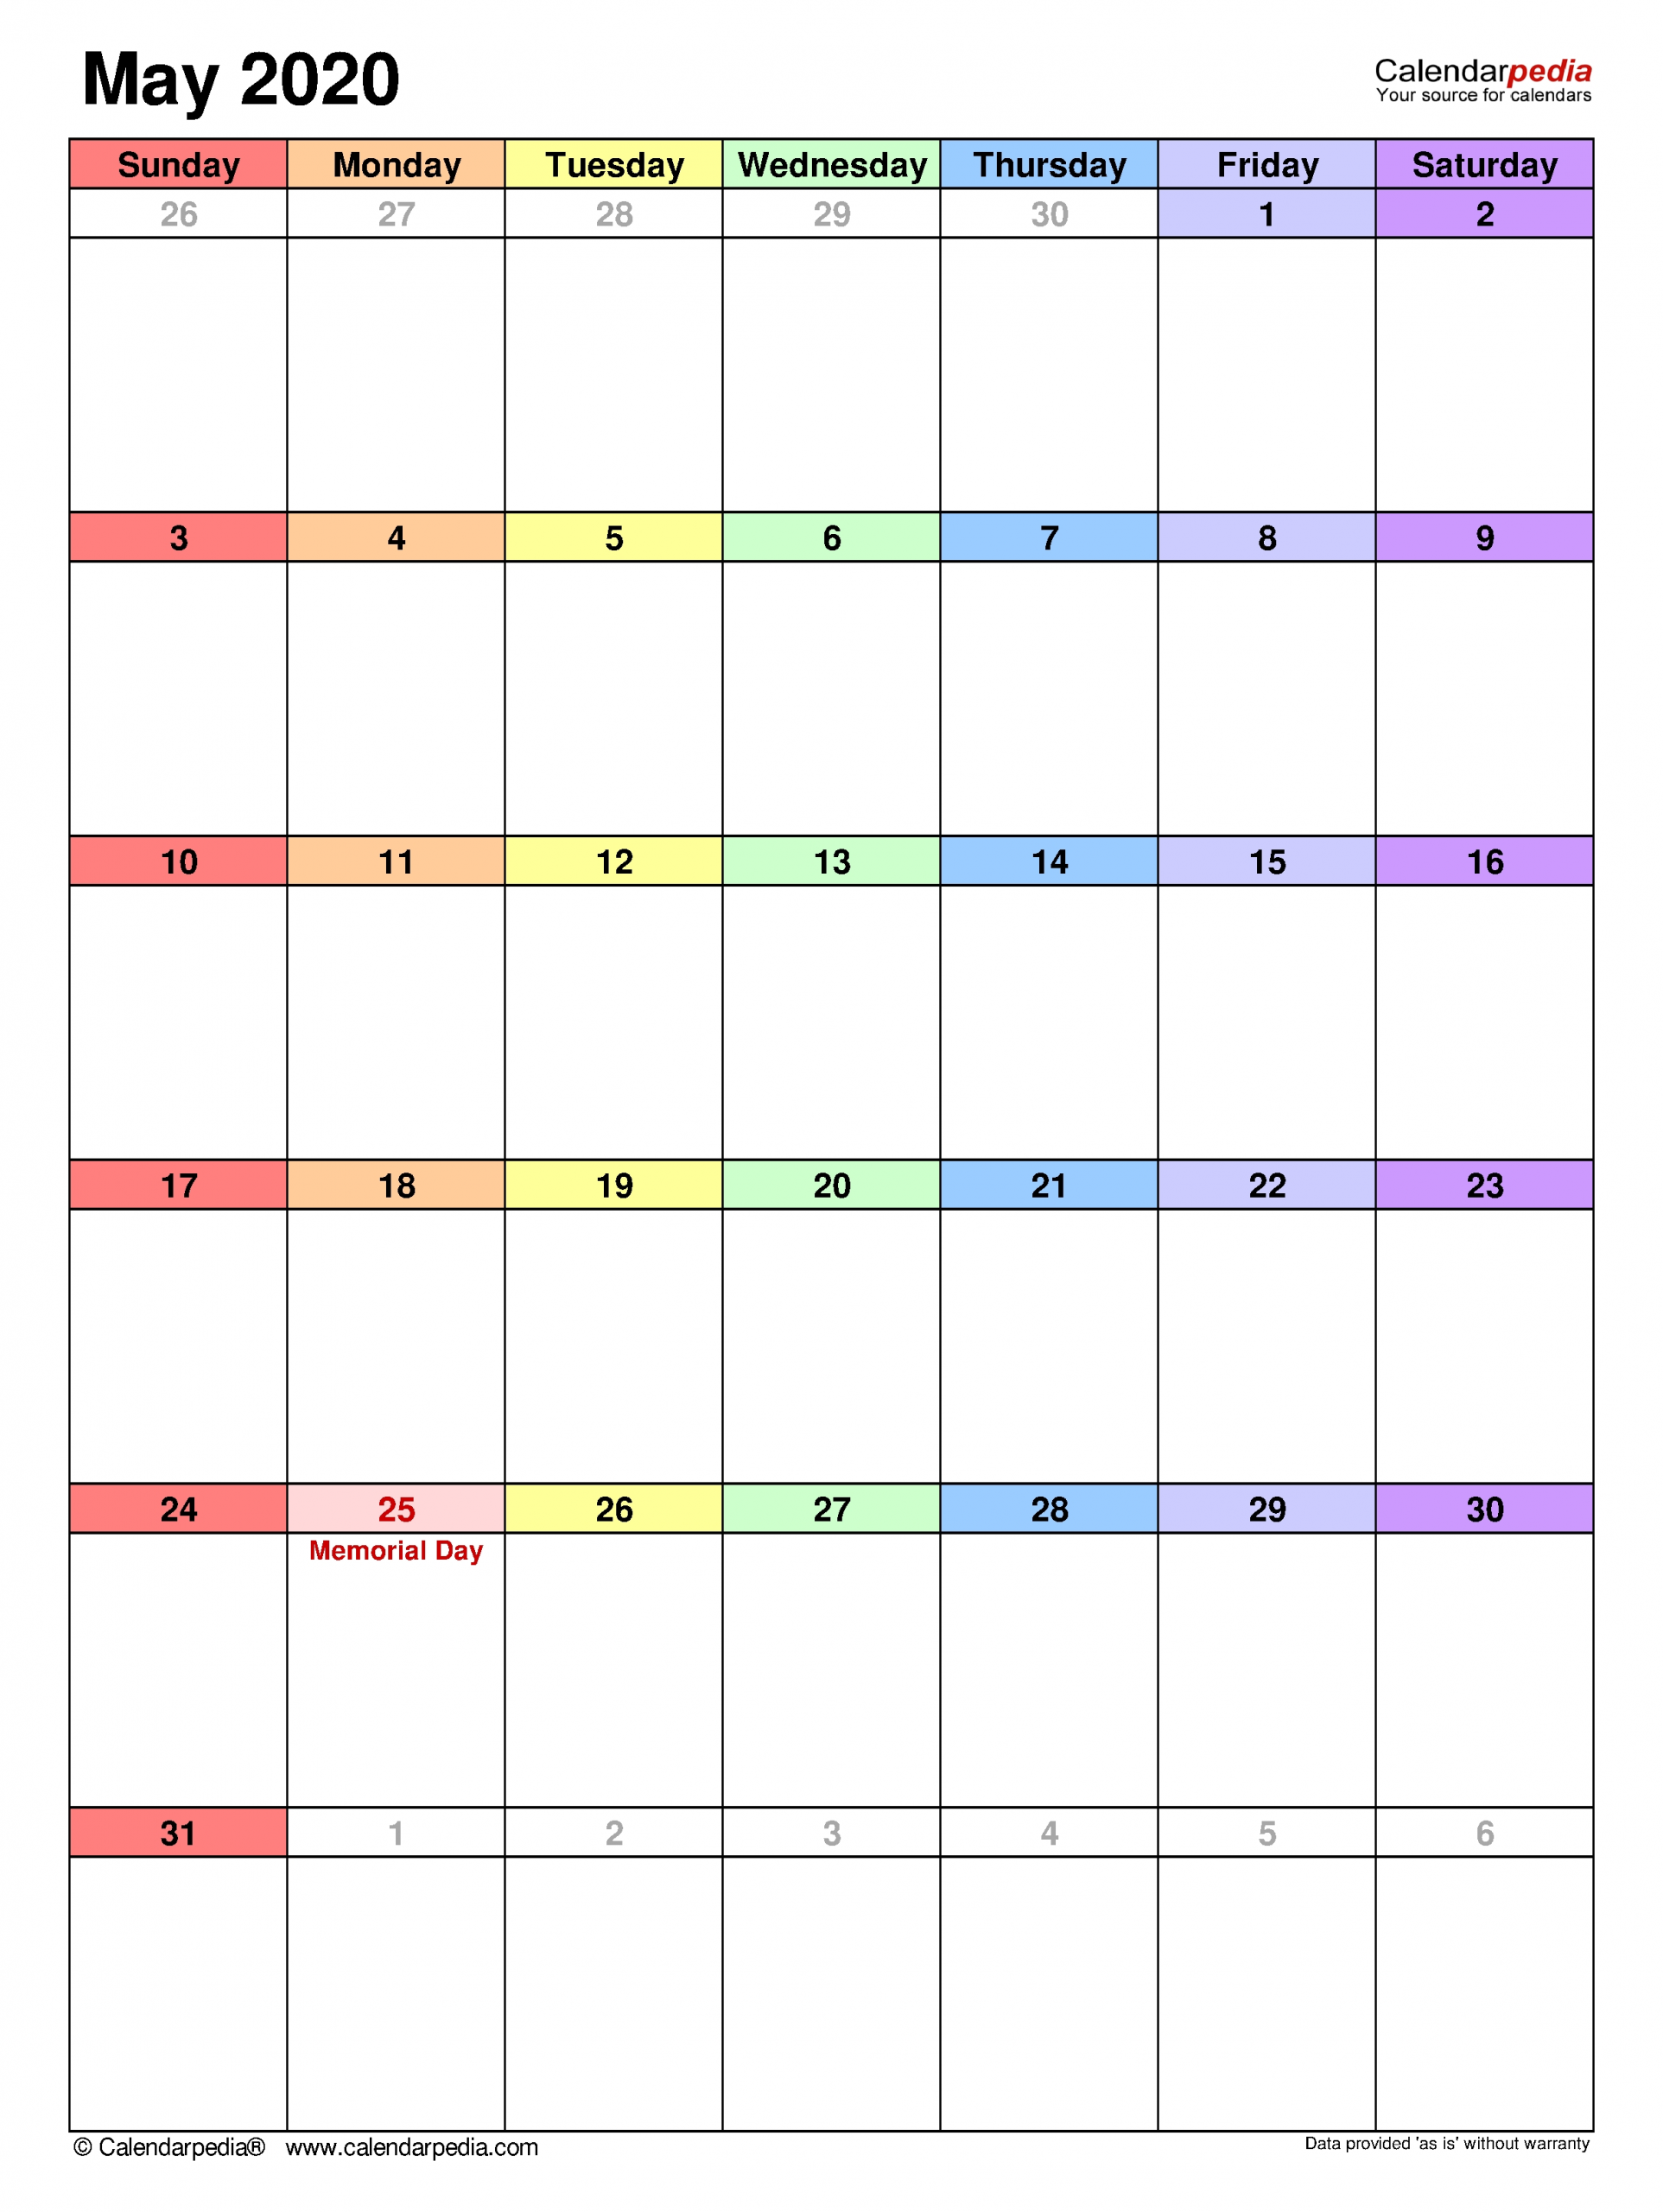 May 2020 Calendar | Templates For Word, Excel And Pdf